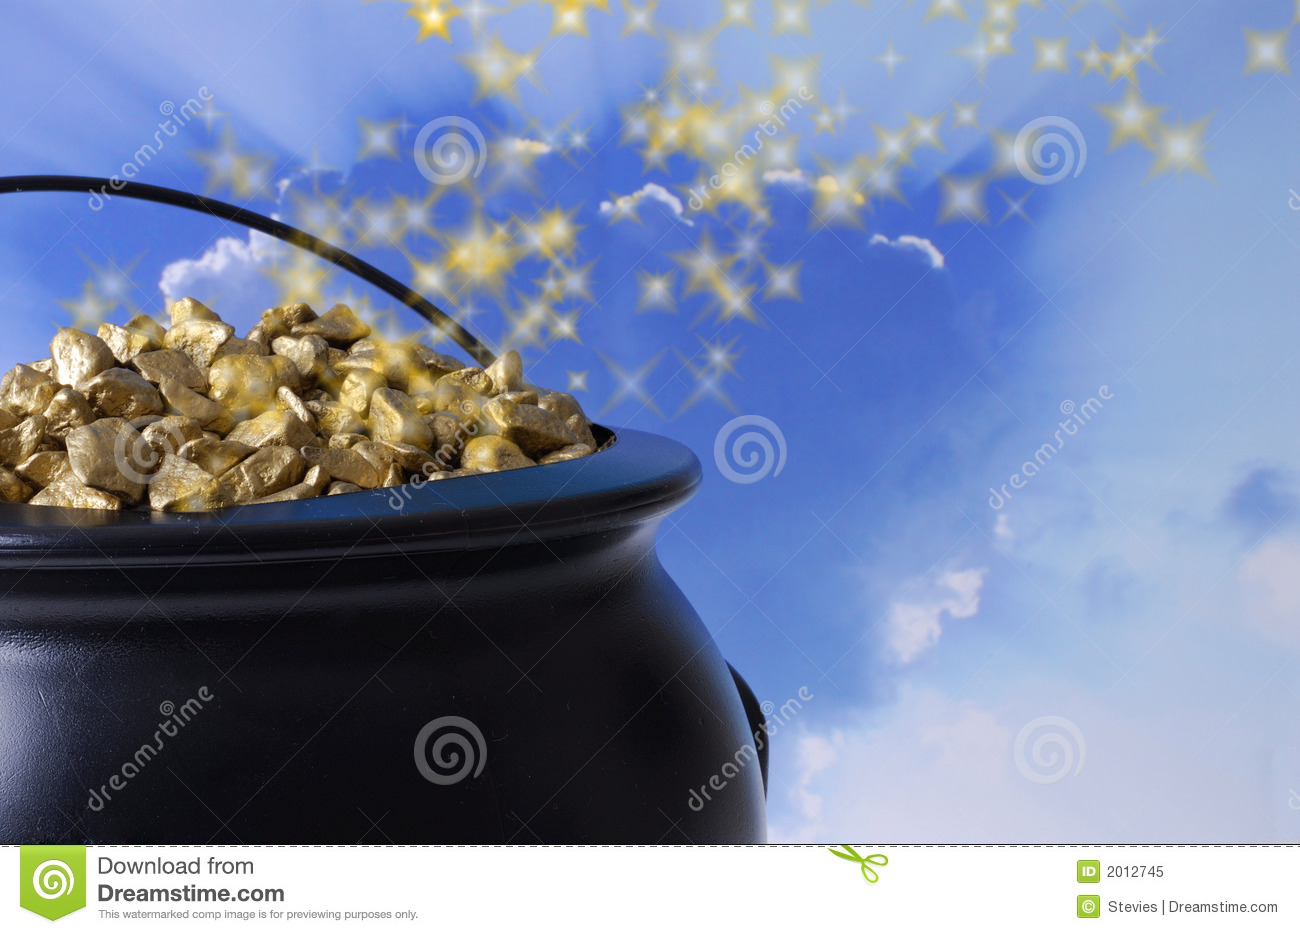 Pot of Gold Background - Bing images